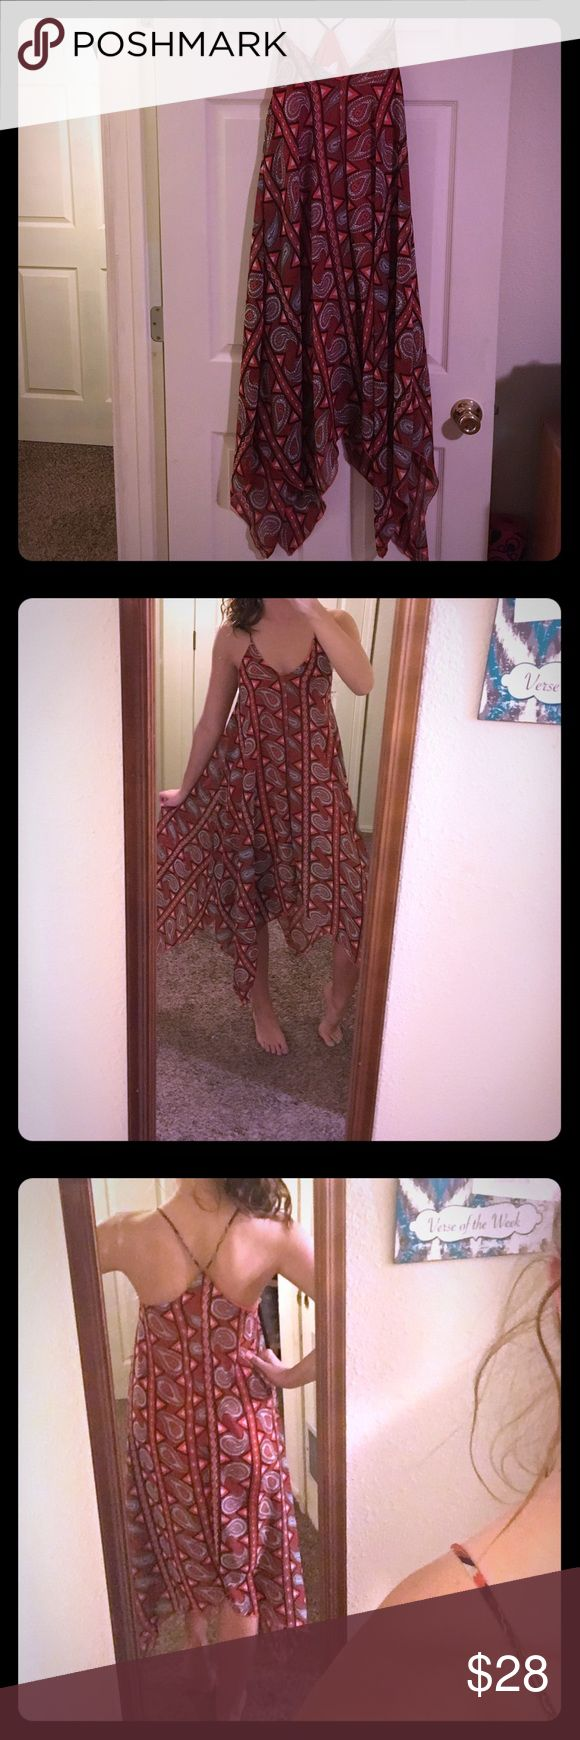 Paisley Dress Never worn. Paisley dress. Different lengths. Form fitting under dress. Spaghetti strap Agaci Dresses Midi